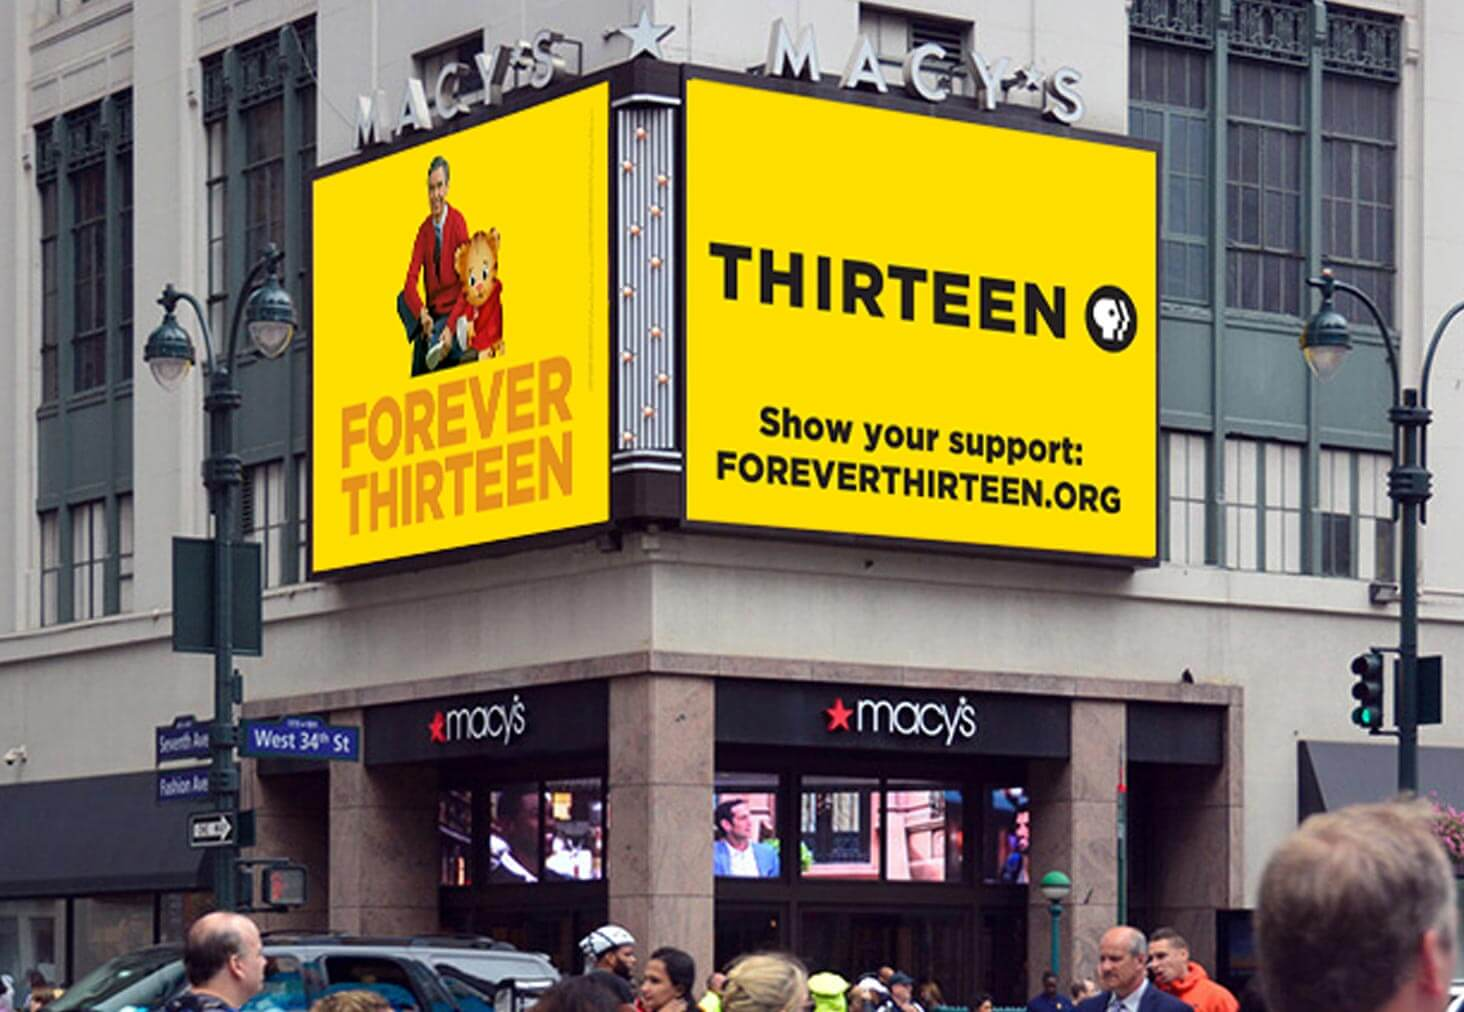 WNET Thirteen. Some people stay Thirteen forever